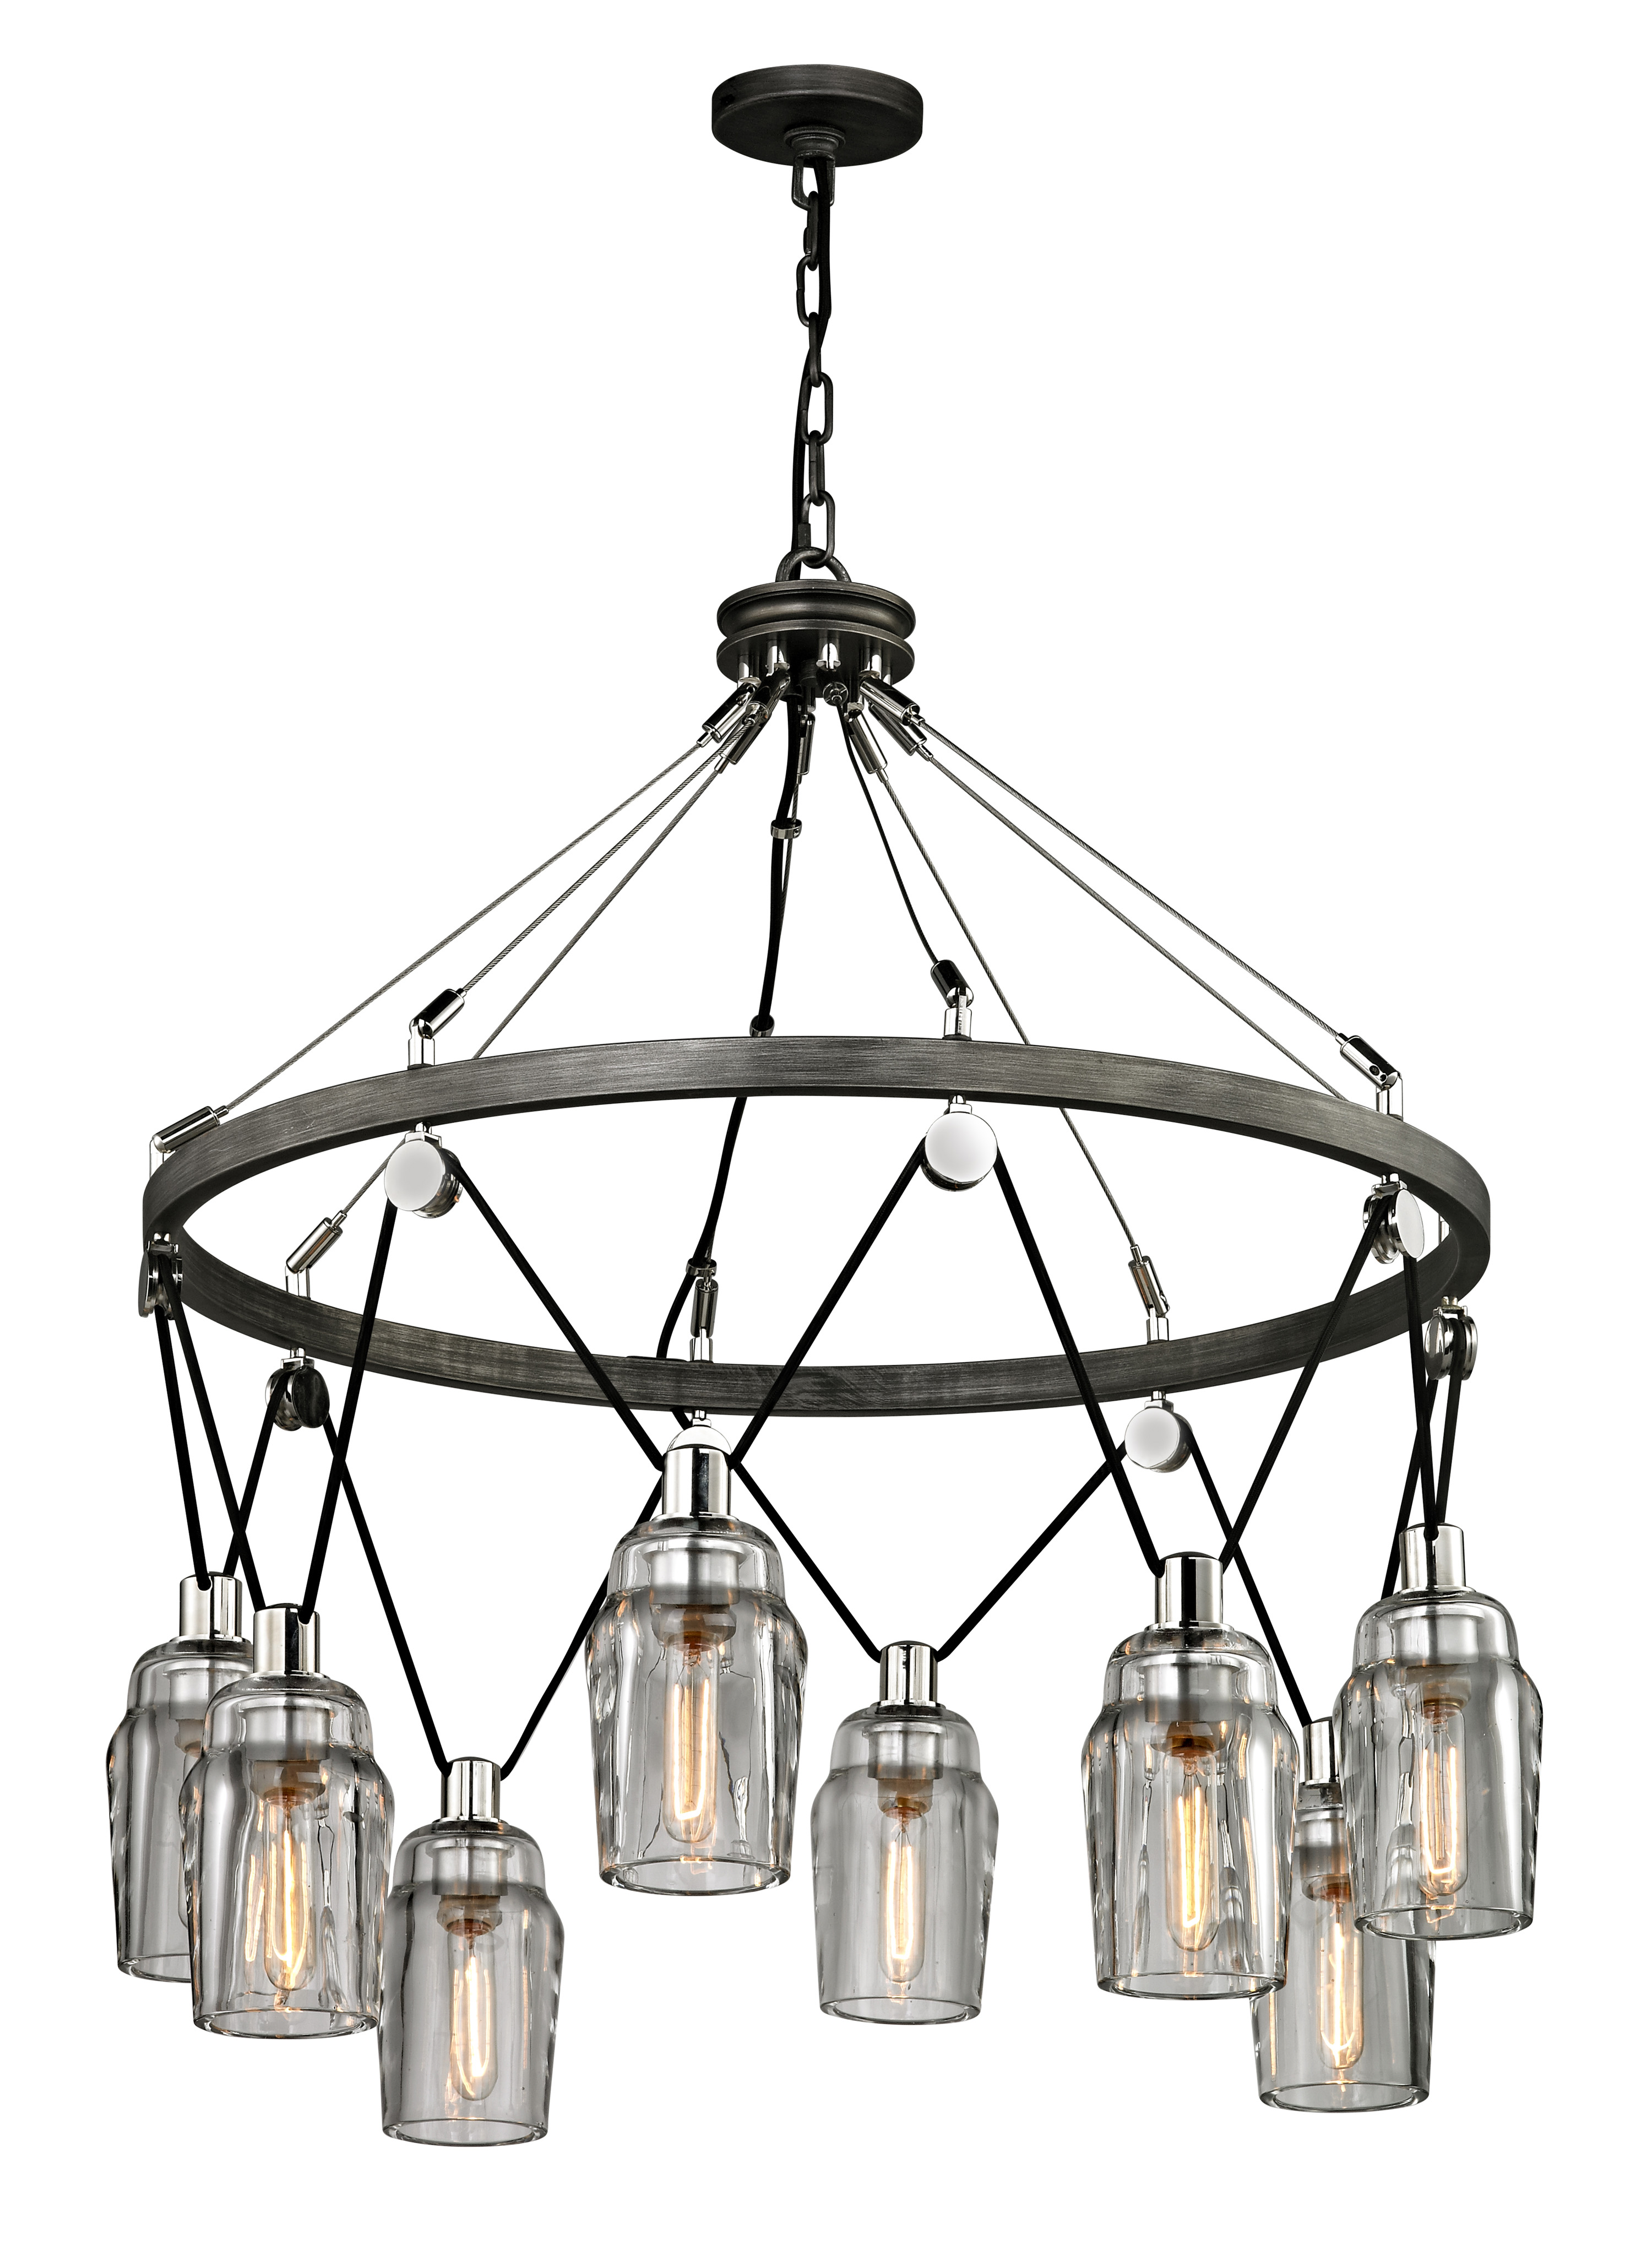 Troy Lighting Presents New Collections That Epitomize Their Brand S Dna